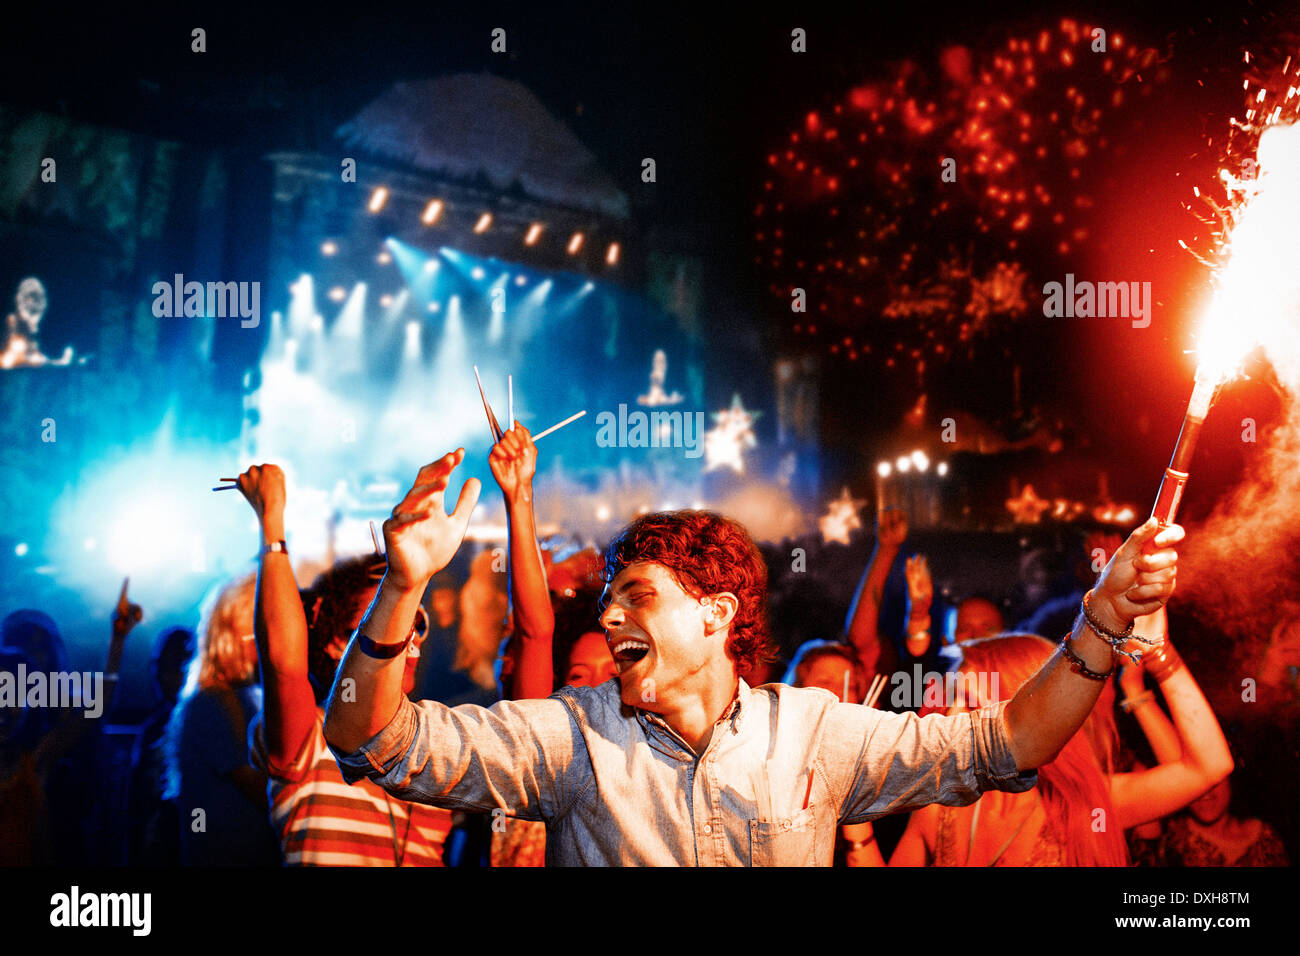 Fans with fireworks at music festival - Stock Image